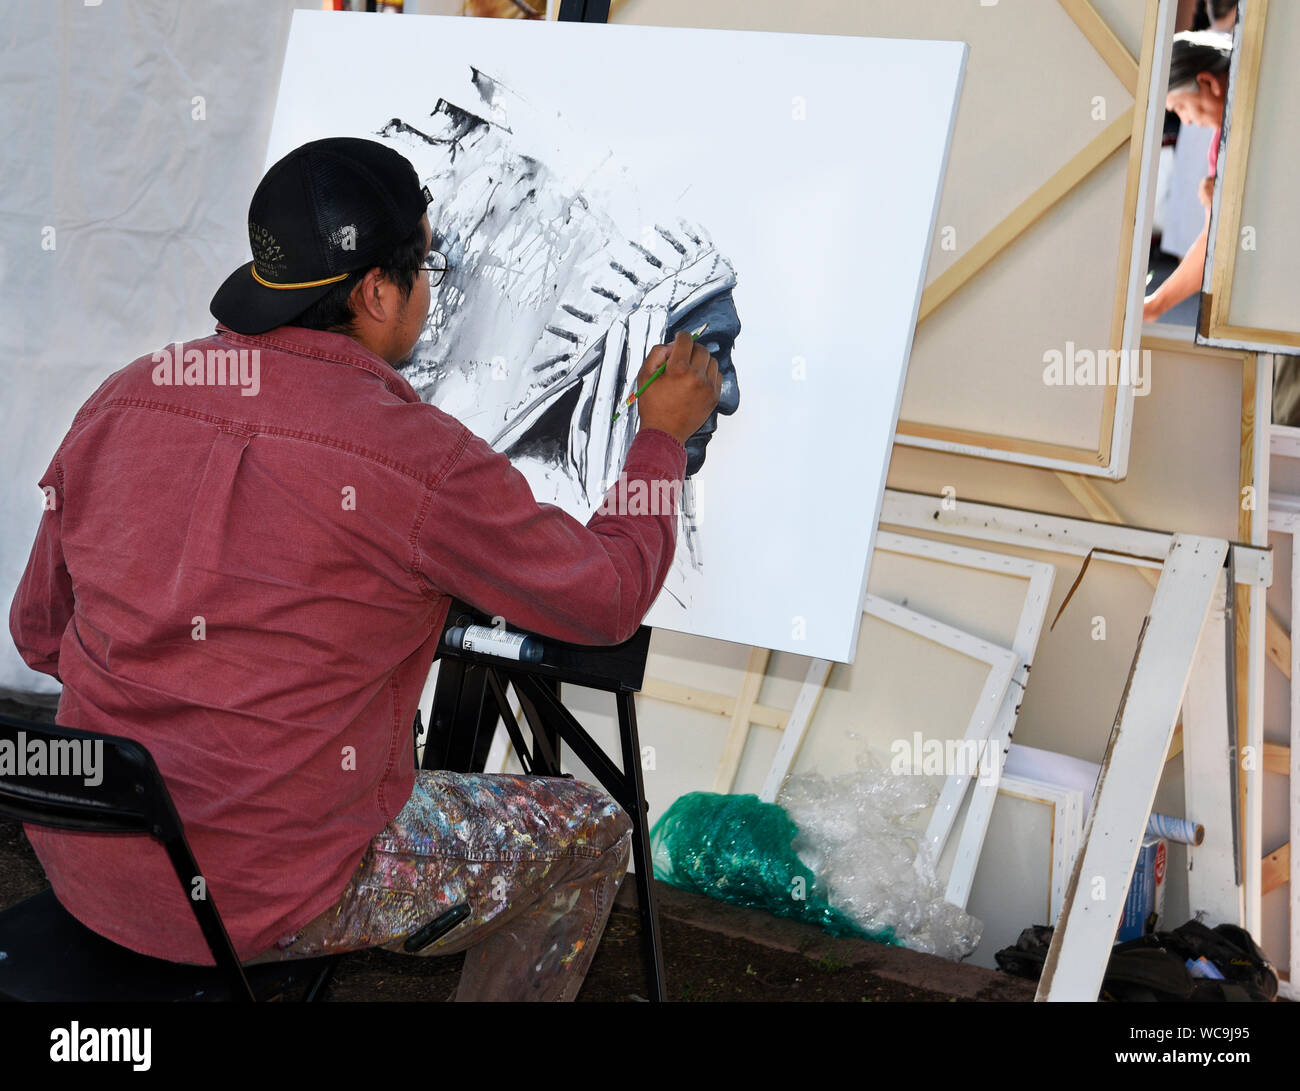 Jerry Salazar A Native American Navajo Artist Works On A Portrait At His Booth At The Santa Fe Indian Market In Santa Fe New Mexico Stock Photo Alamy